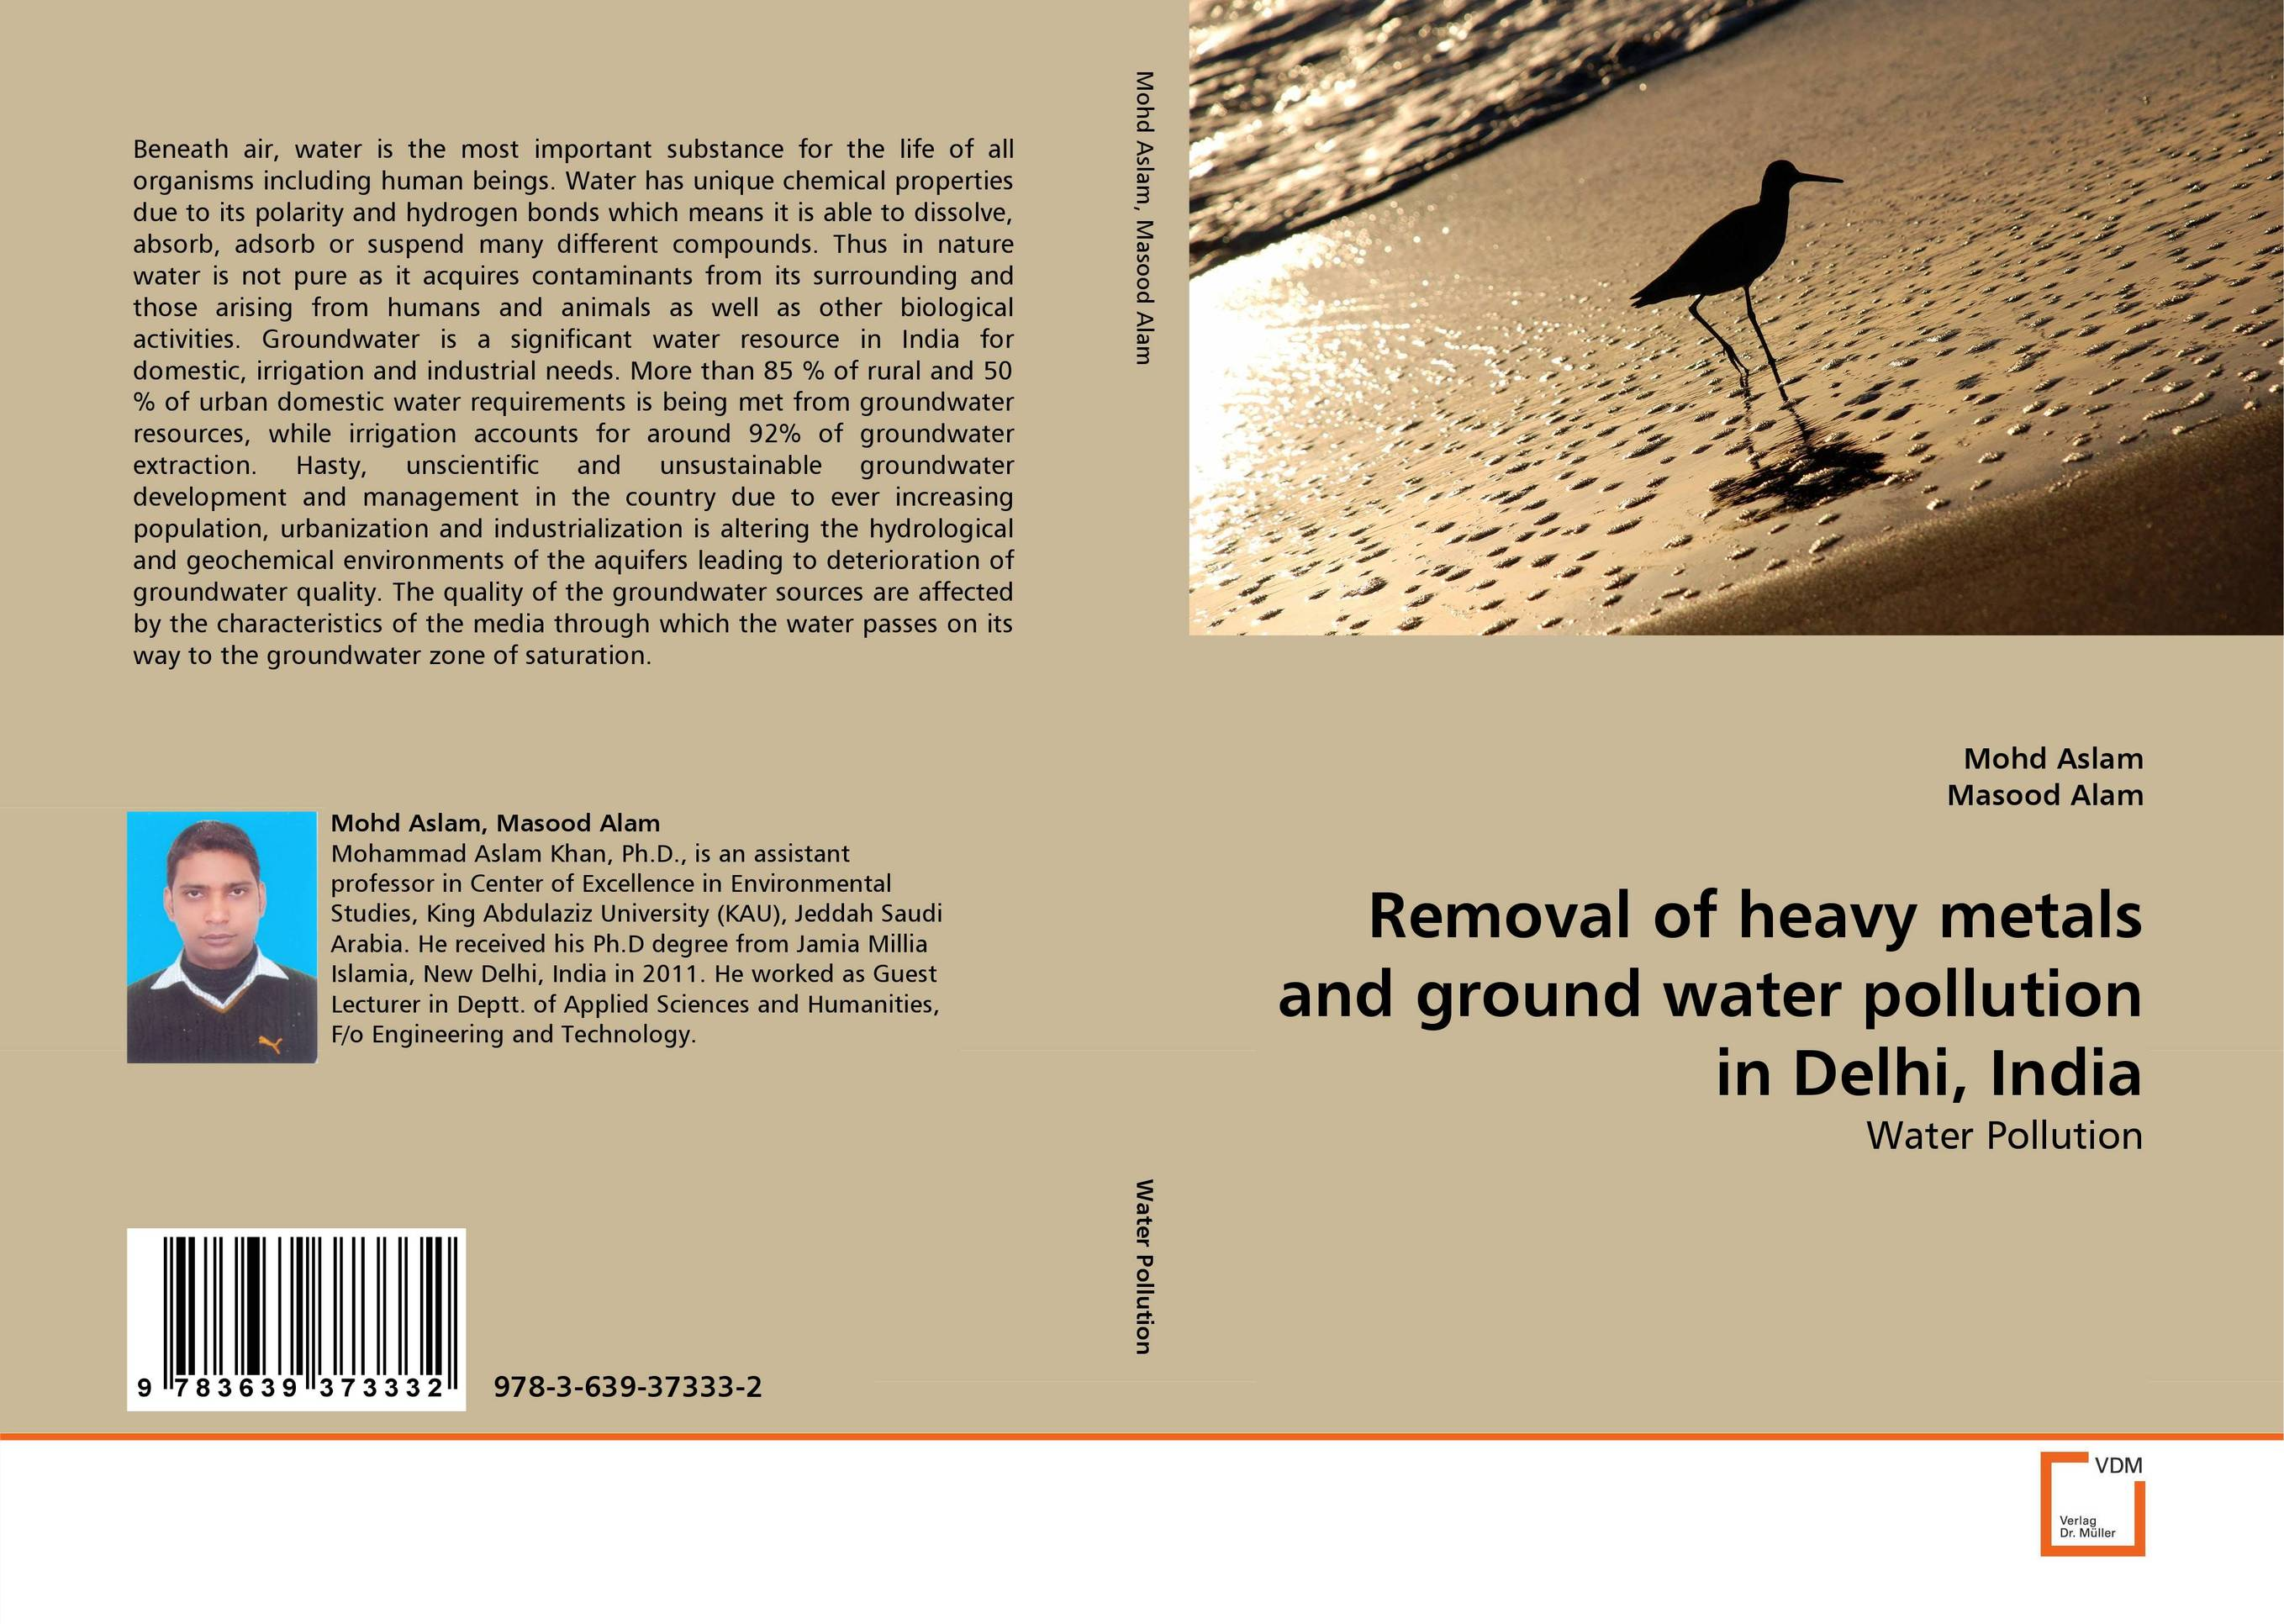 Removal of heavy metals and ground water pollution in Delhi, India marwan a ibrahim effect of heavy metals on haematological and testicular functions